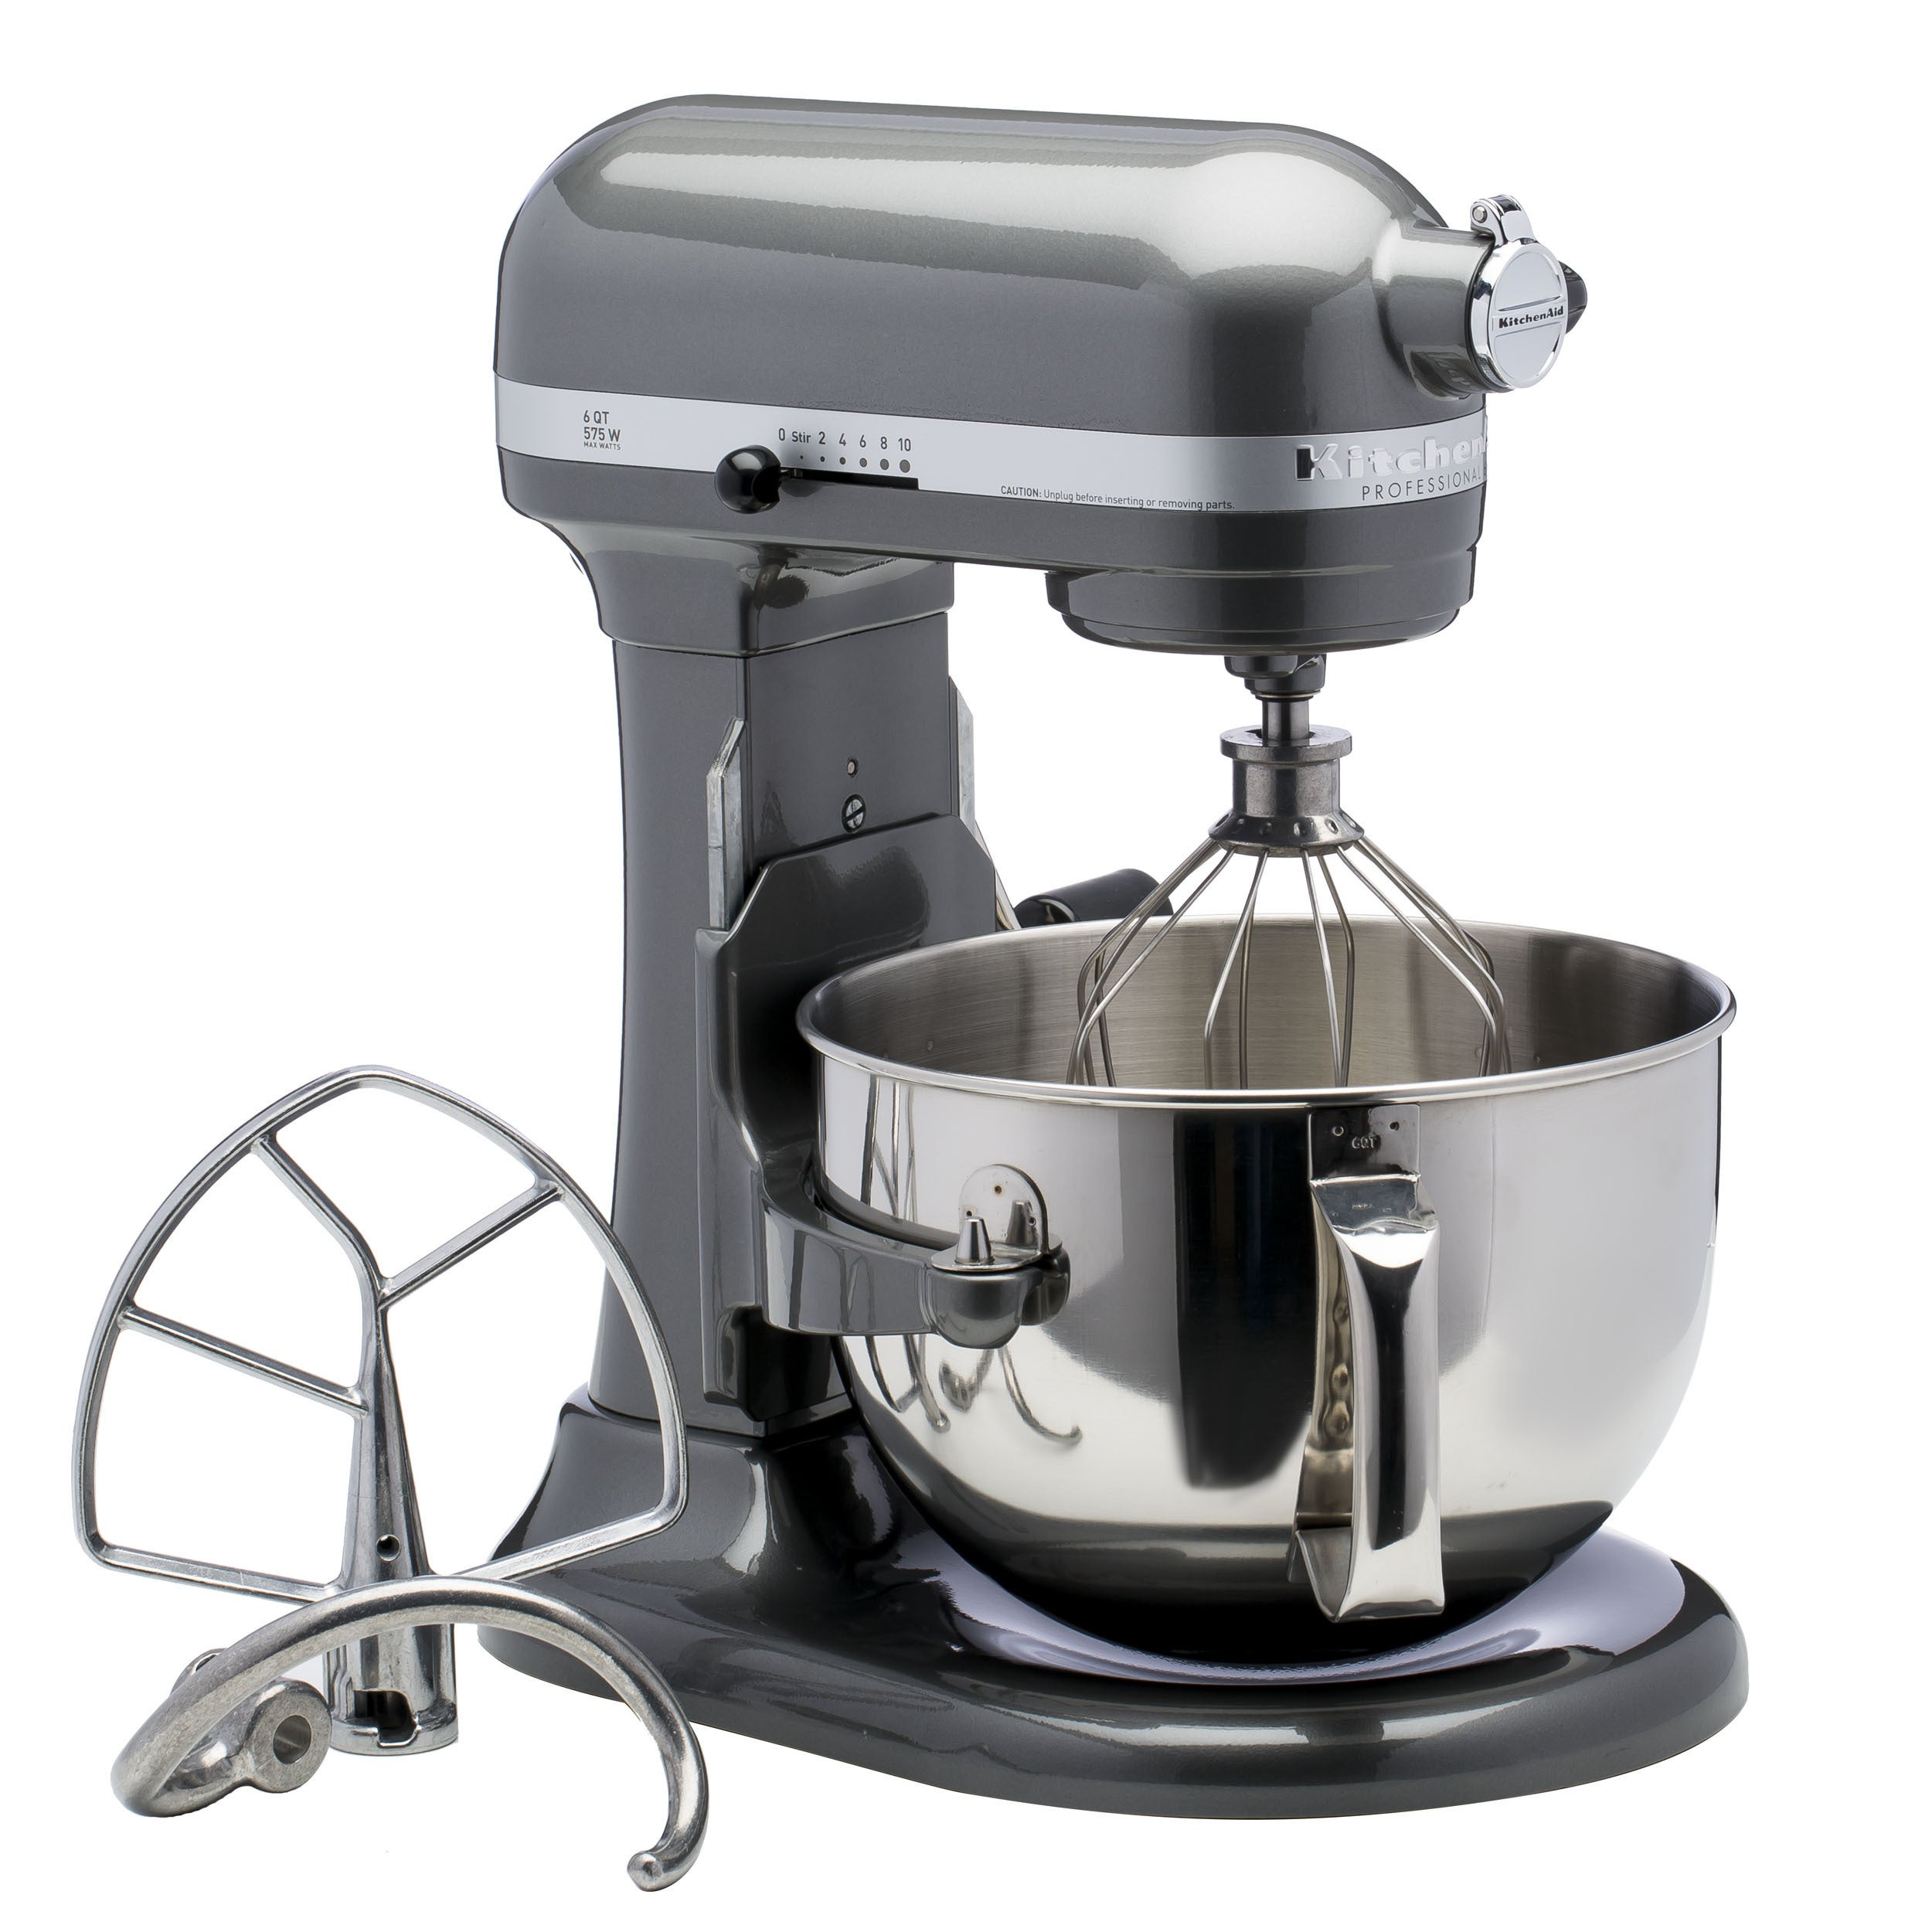 Superb Kitchenaid Rkp26M1Xpm Pearl Metallic 6 Quart Pro 600 Bowl Lift Stand Mixer Refurbished Download Free Architecture Designs Scobabritishbridgeorg